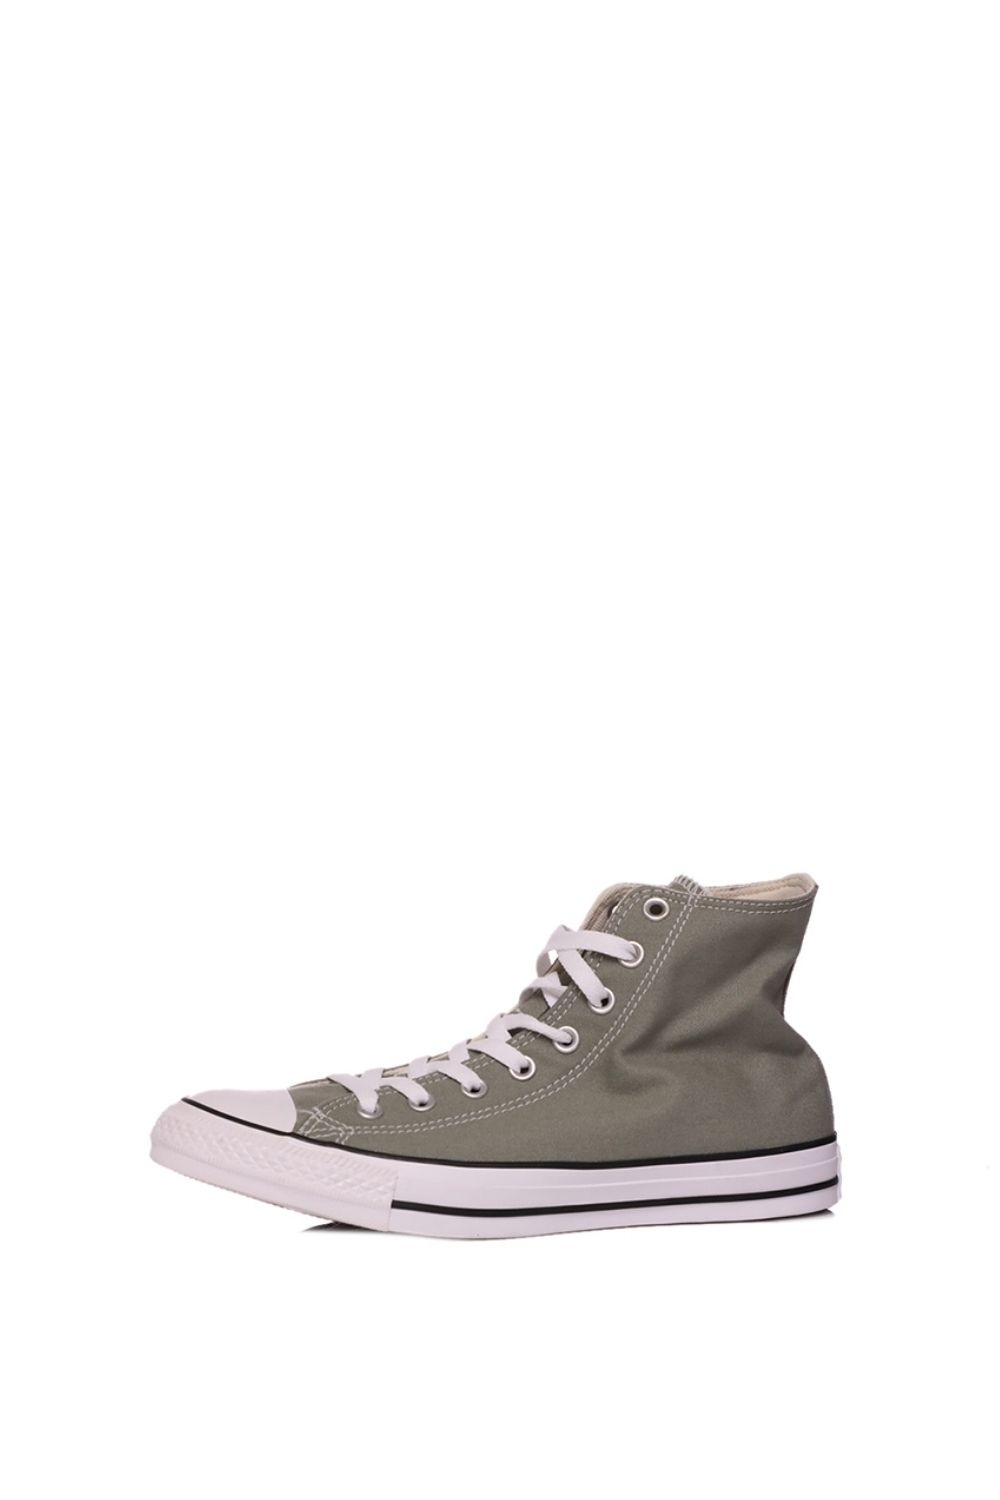 CONVERSE – Unisex sneakers CONVERSE CHUCK TAYLOR ALL STAR χακί